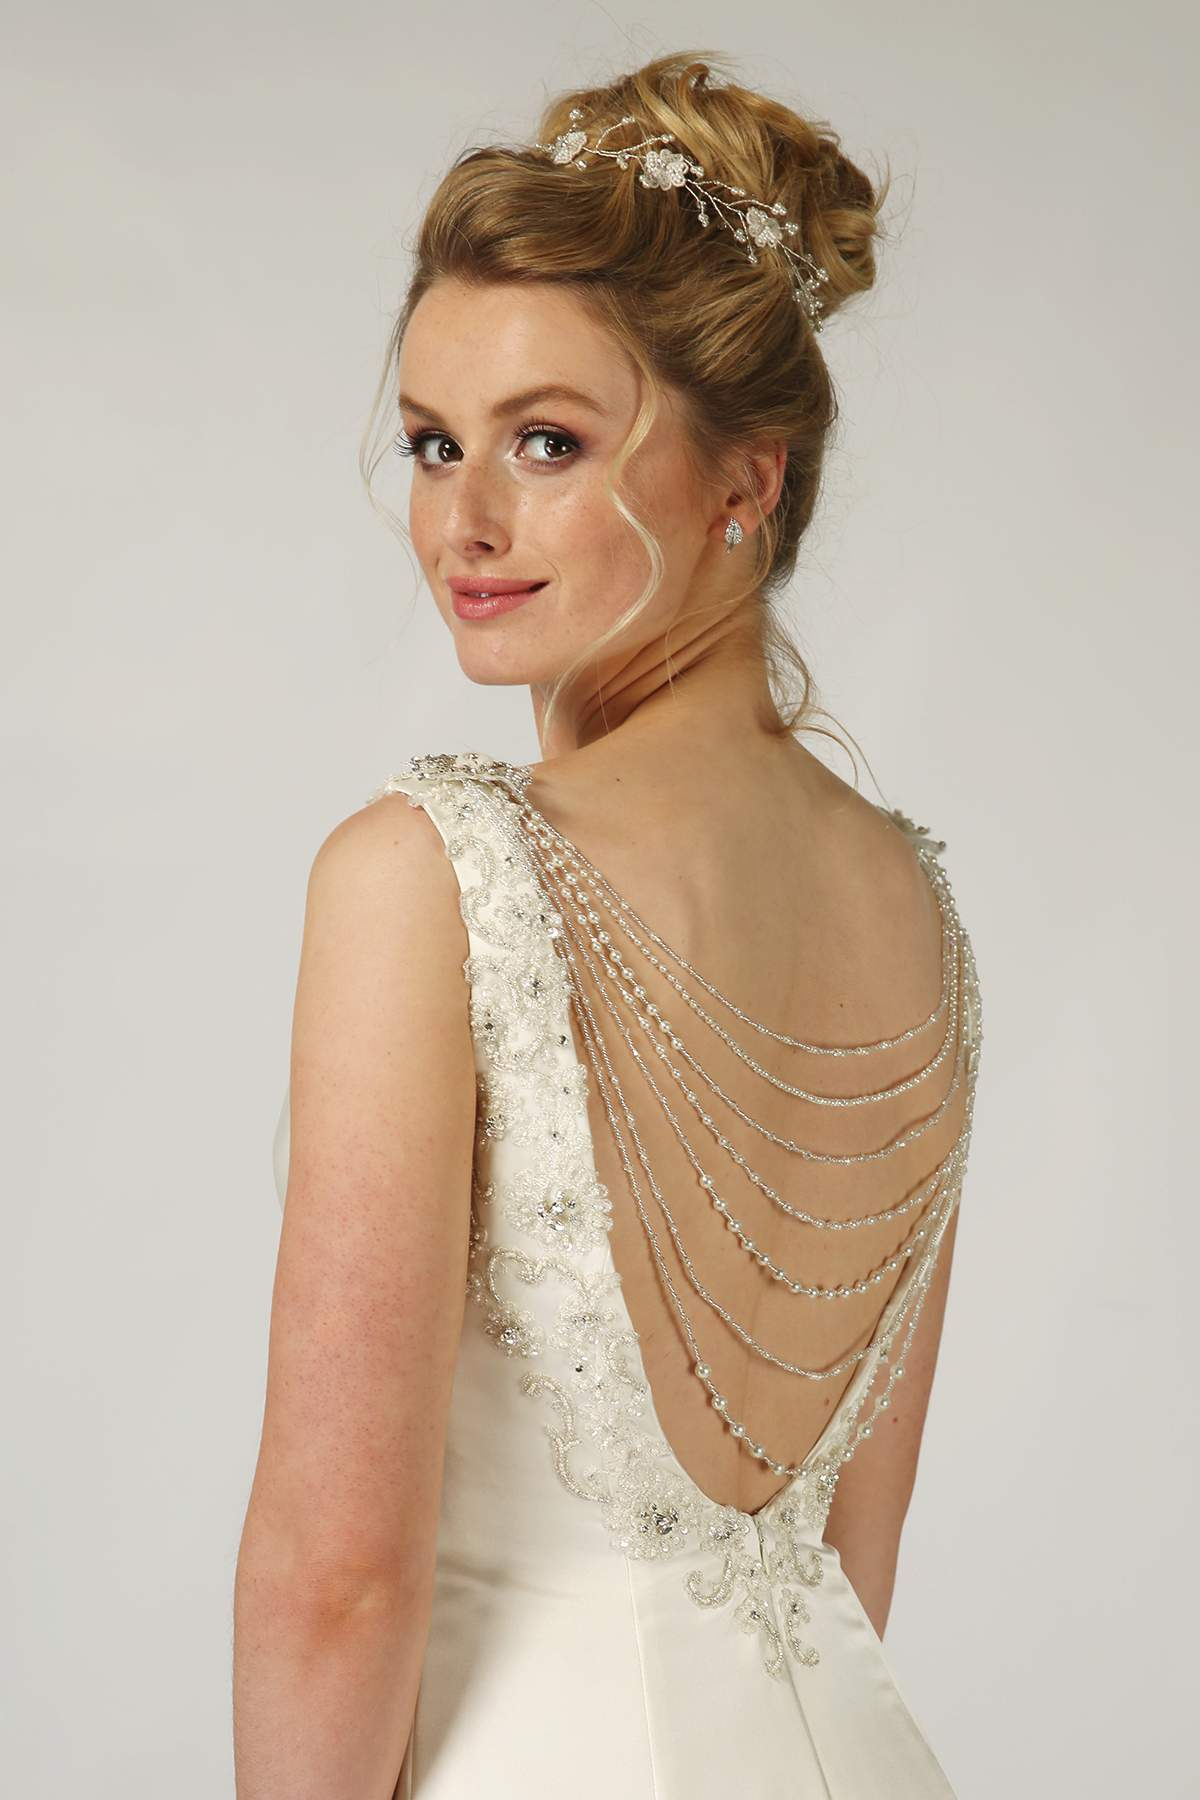 161b4c3411fc0 Pearl and Crystal Back Jewellery by Richard Designs - Find Your ...